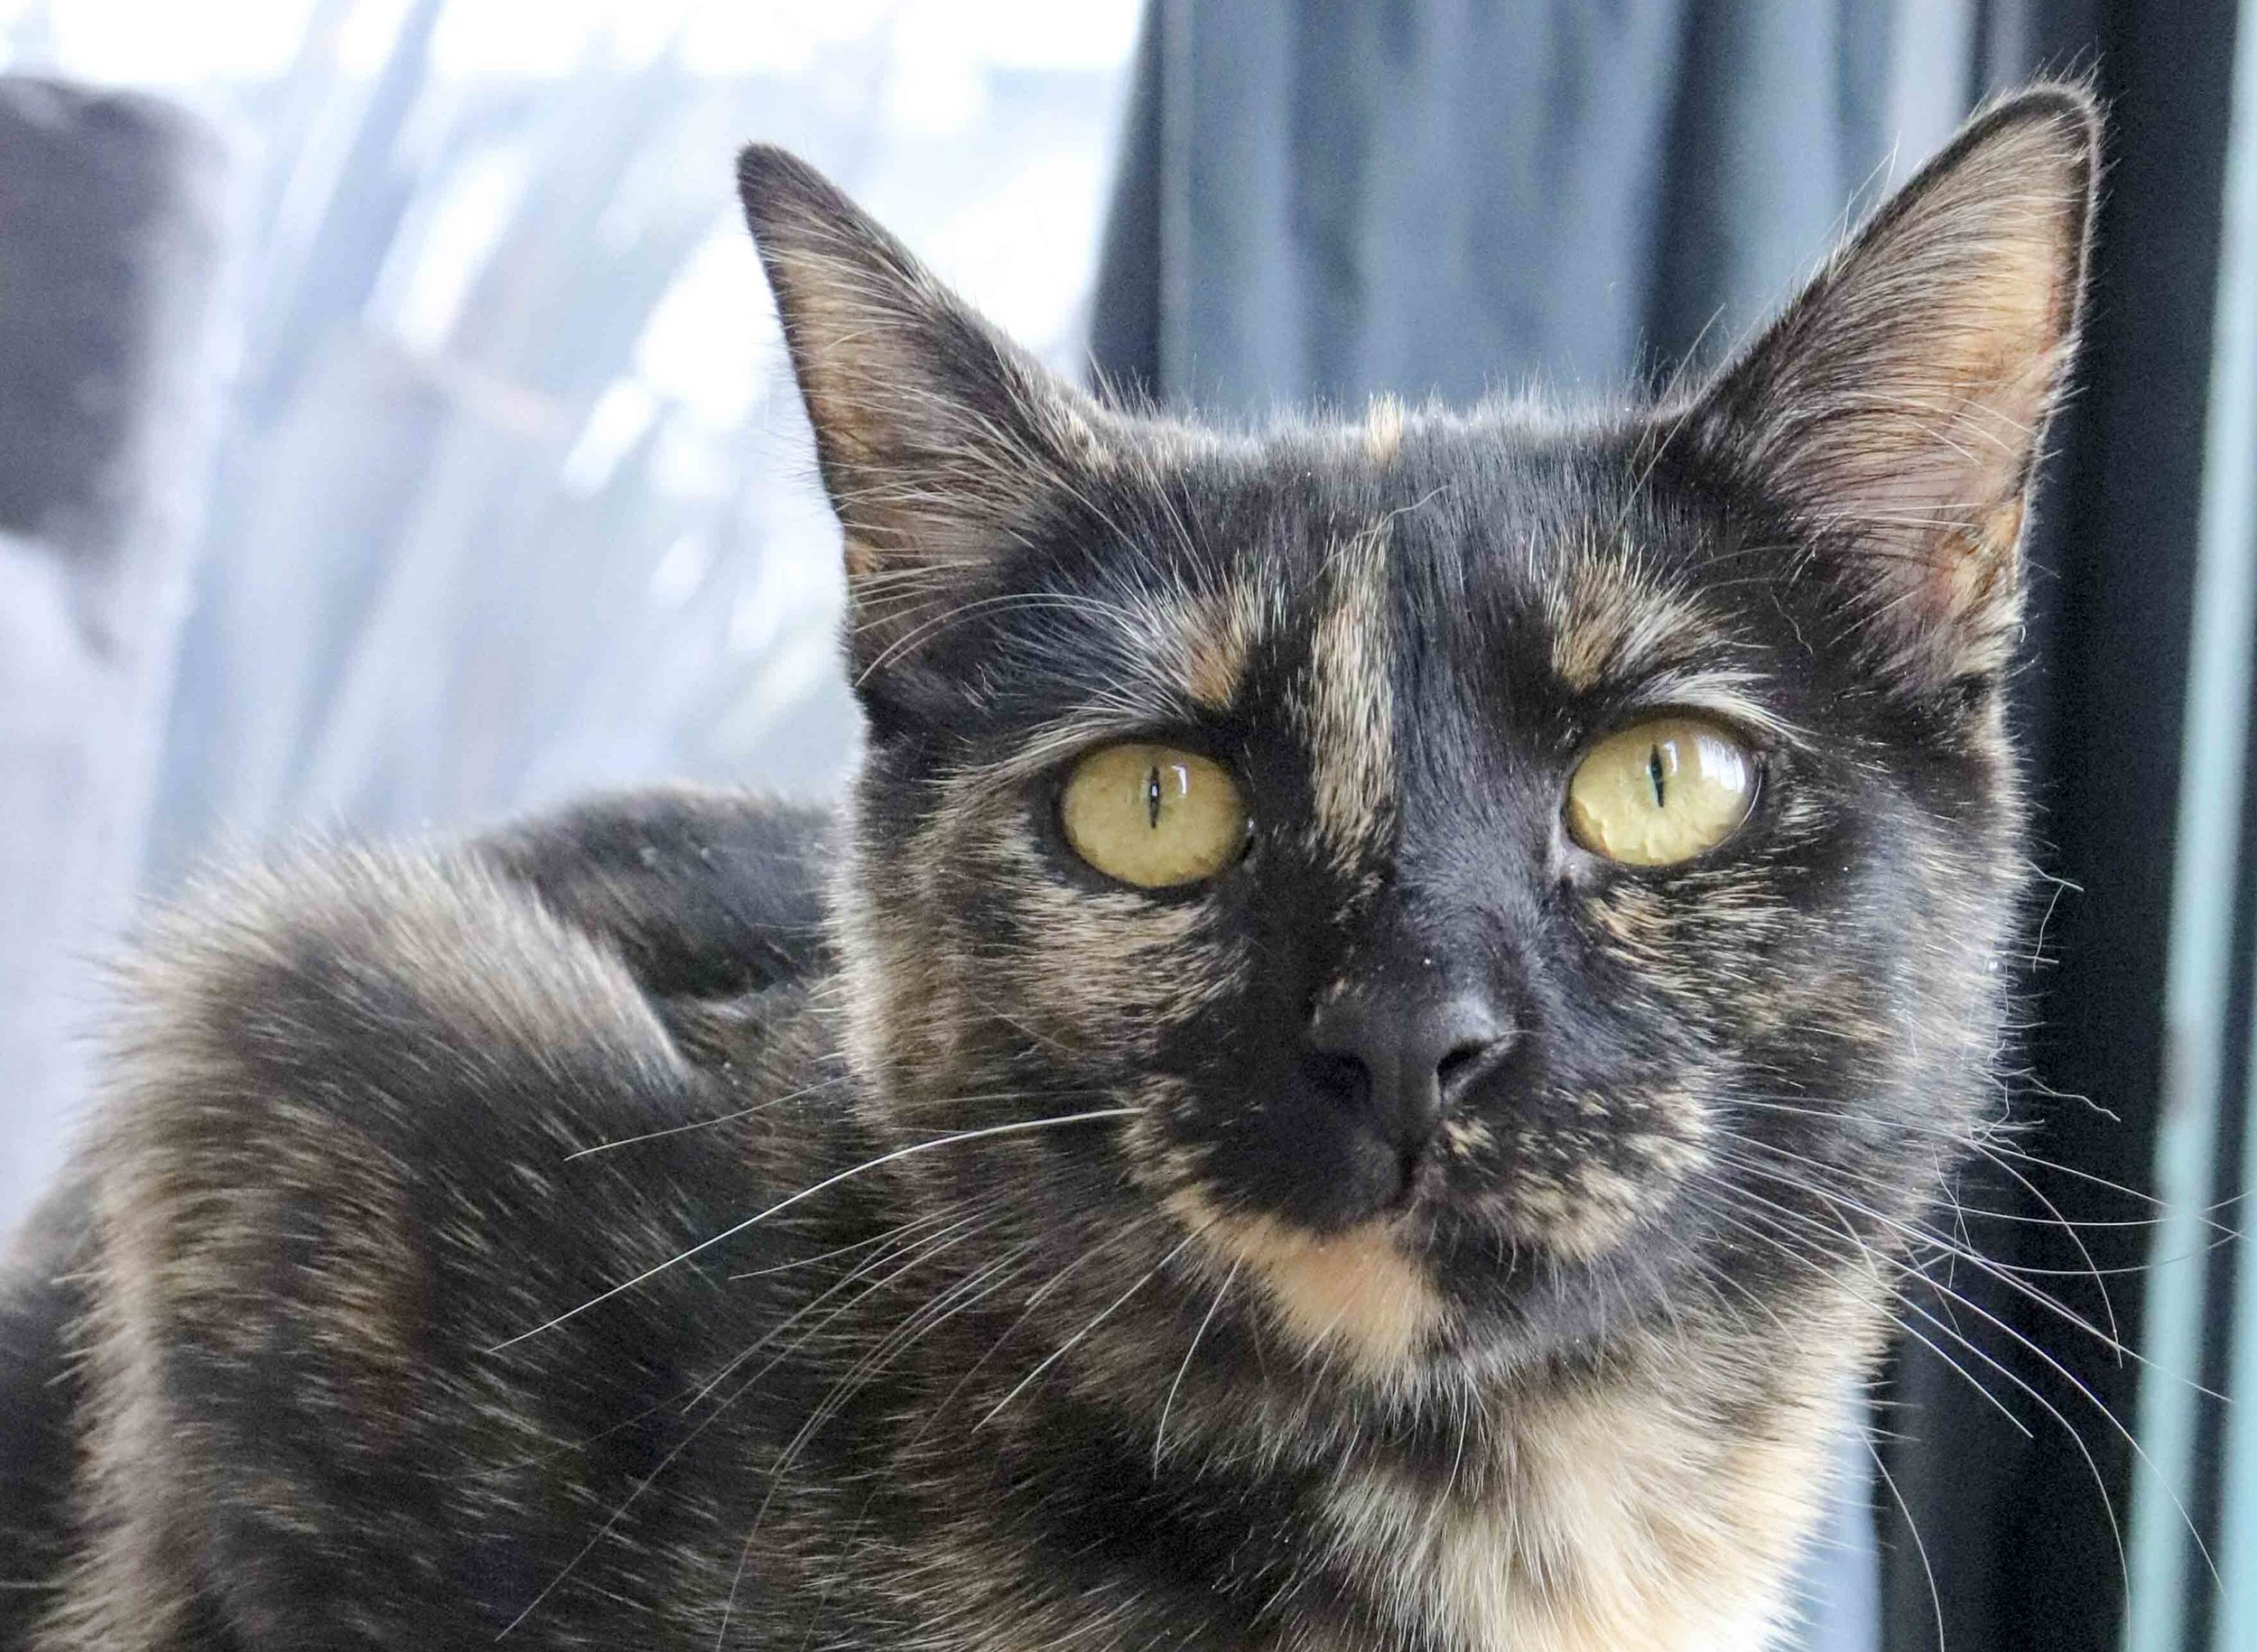 Cats like Turtle are still available for adoption and treatment at home is fairly easy.